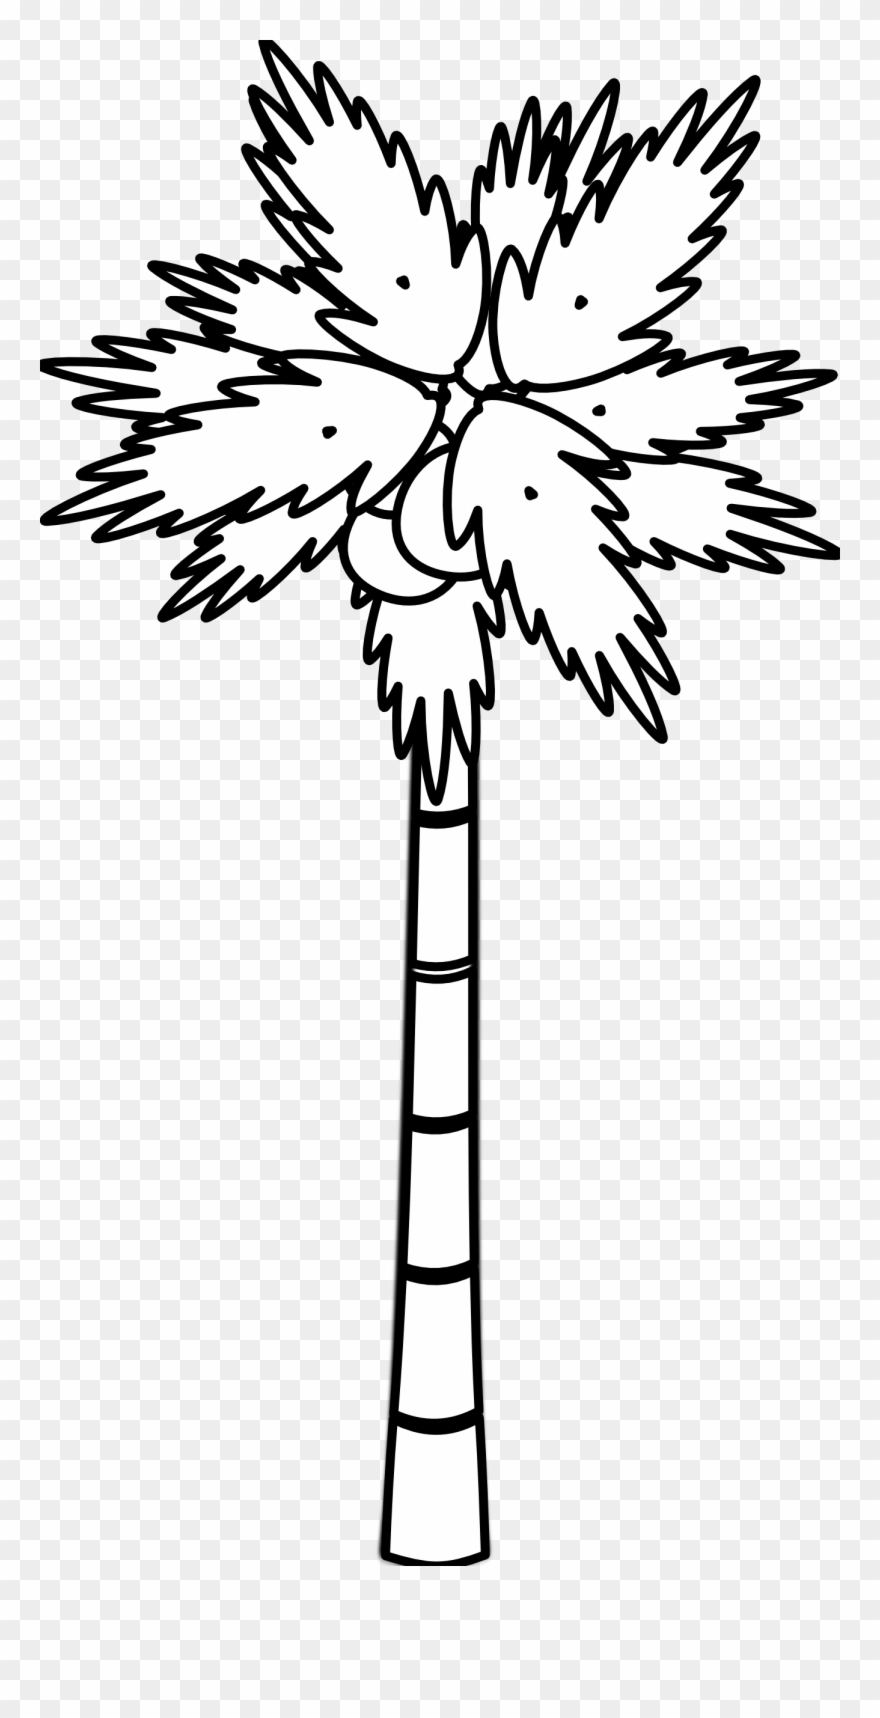 Images For Black And White Tree Drawings Images Coconut Tree Black And White Clipart Png Download 109 Pinclipart